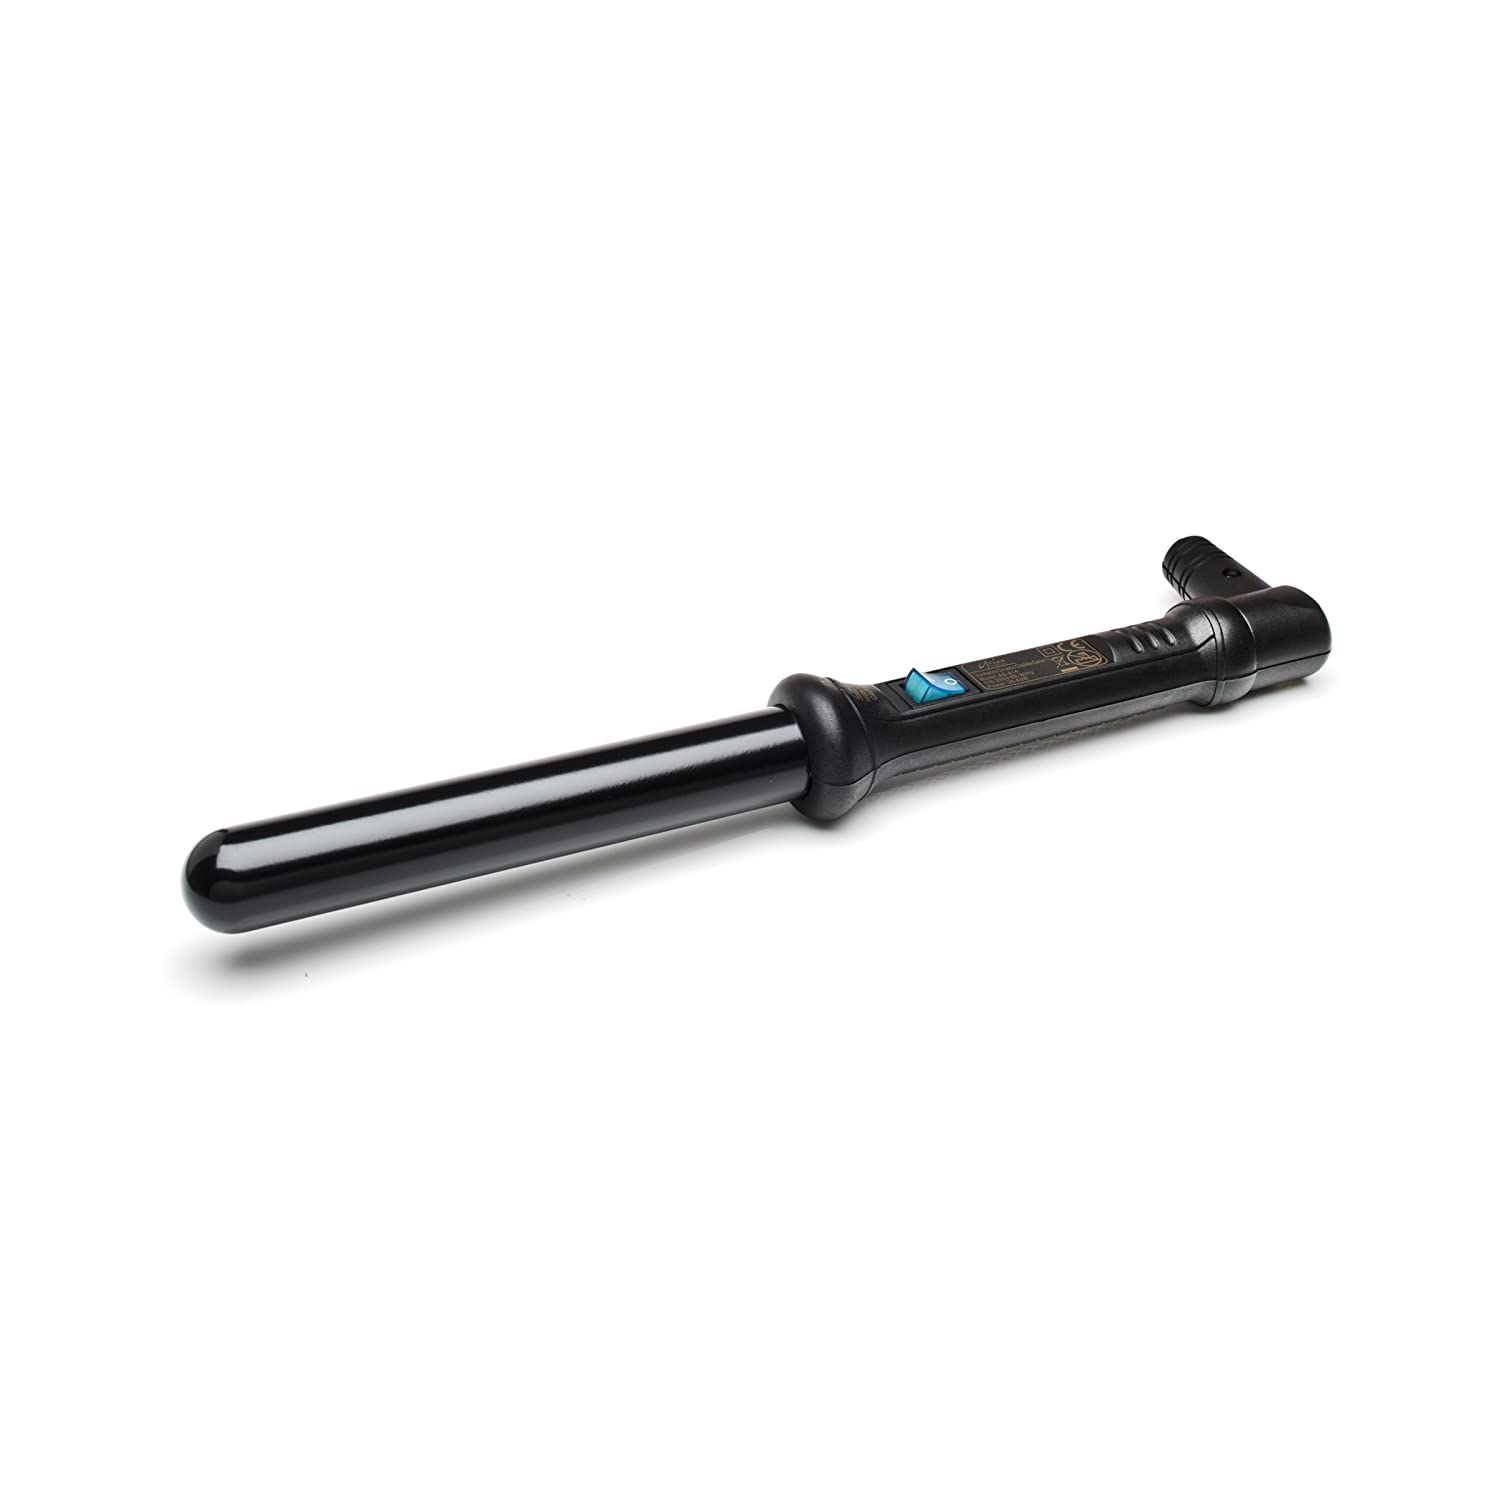 Aria Beauty 25 mm Clipless Curler Black - Rizador de pelo 25 mm color negro - garantía de vida: Amazon.es: Belleza